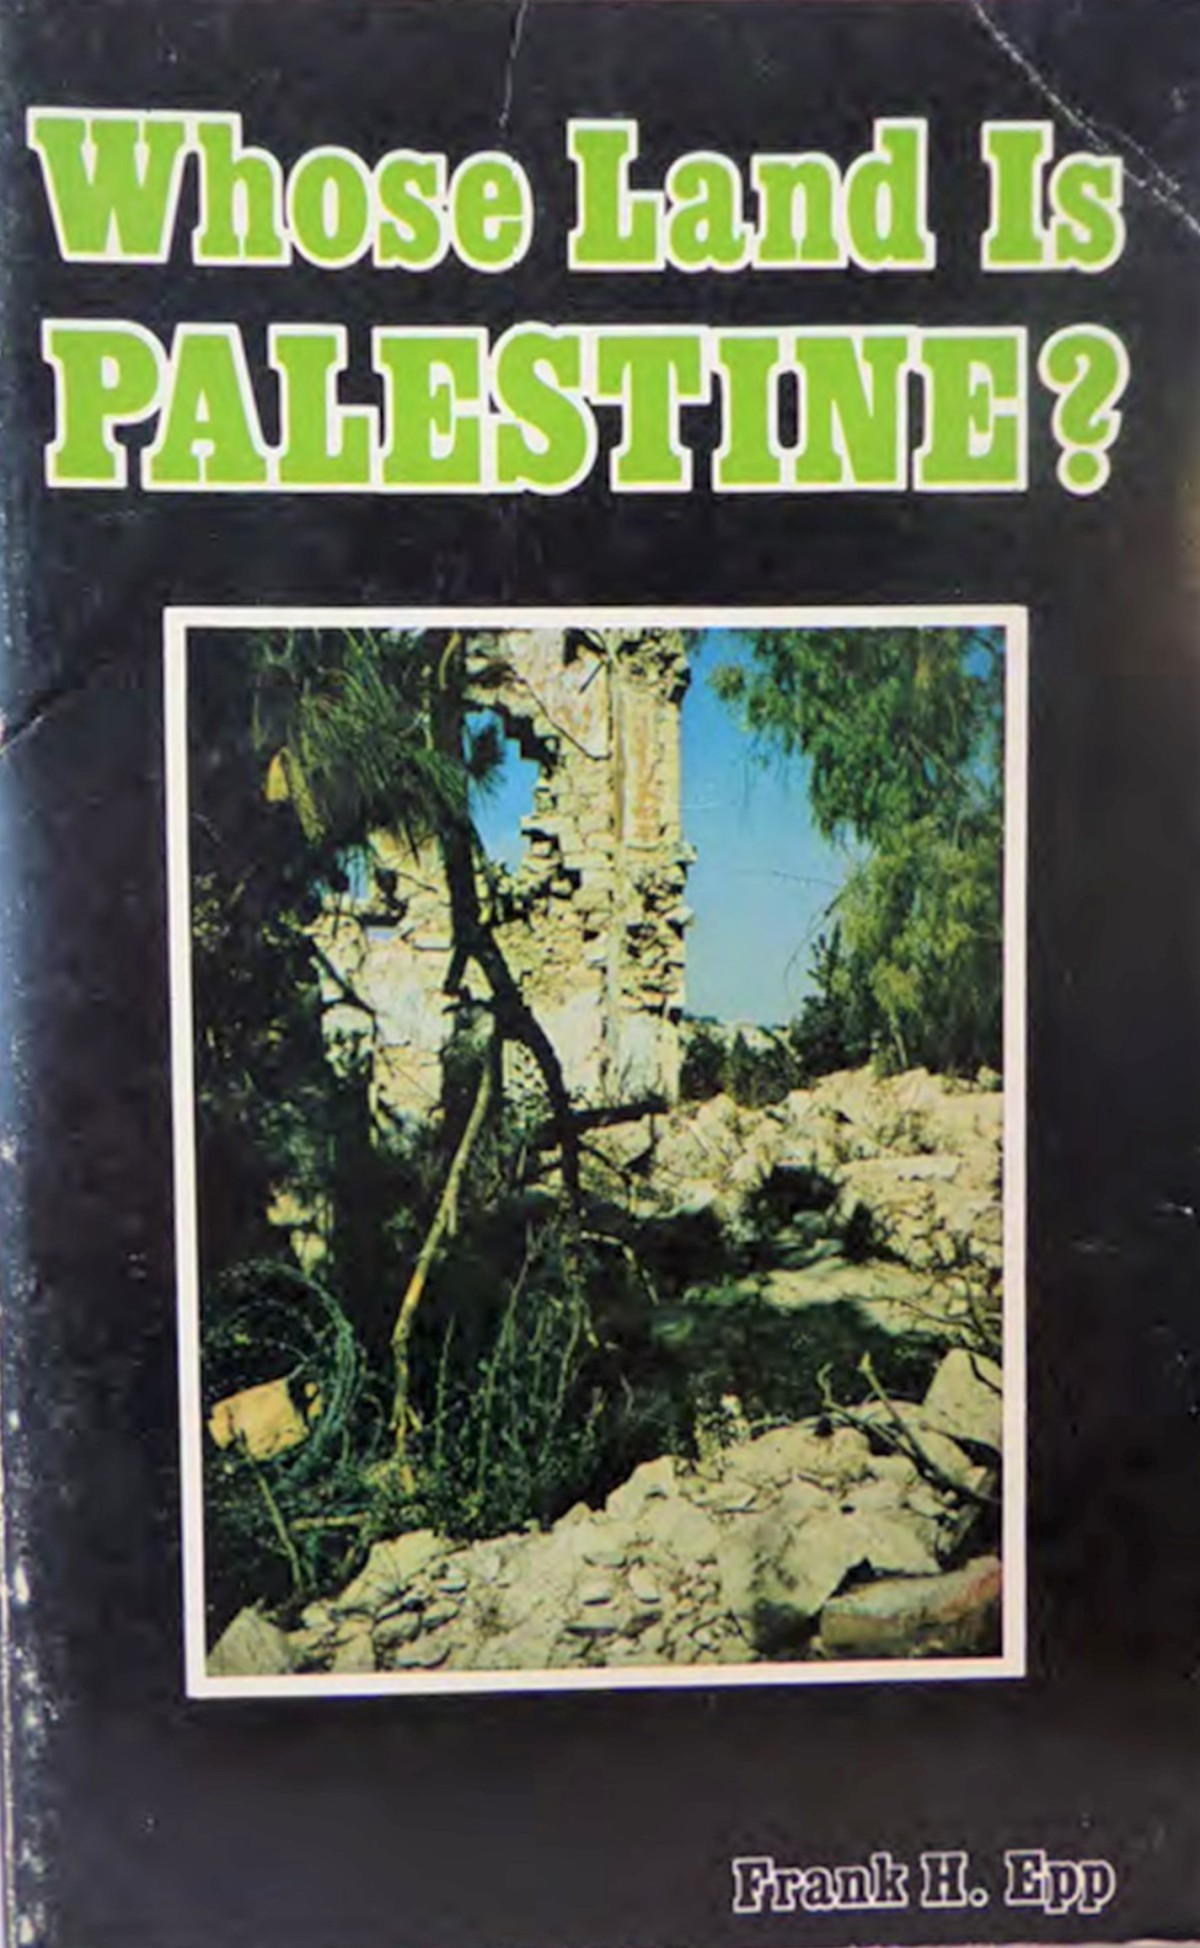 A book called Whose Land is Palestine? provides a good grounding for the contested historical claims in Israel-Palestine.